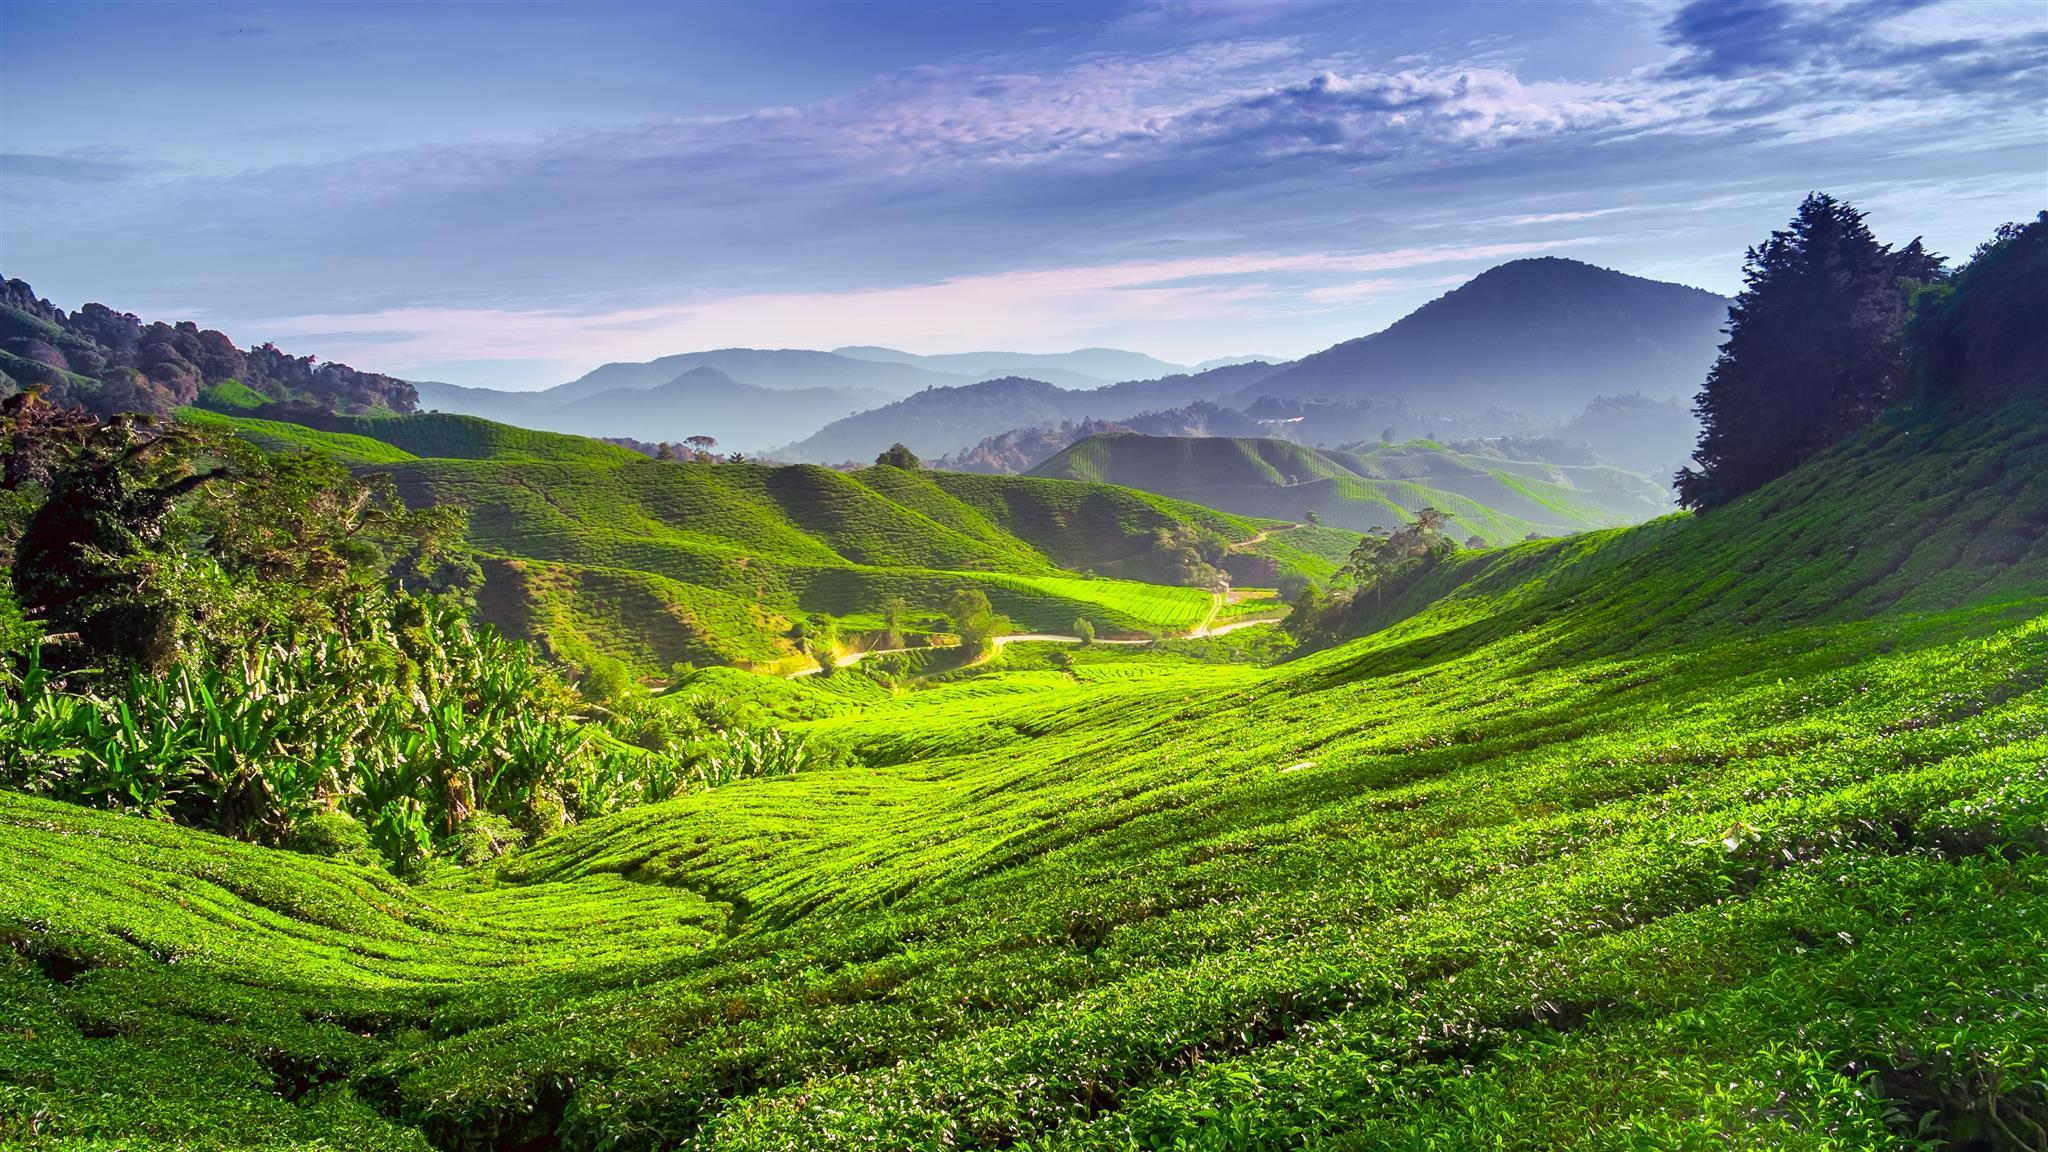 10 Best Cameron Highlands Hotels: HD Pictures + Reviews of